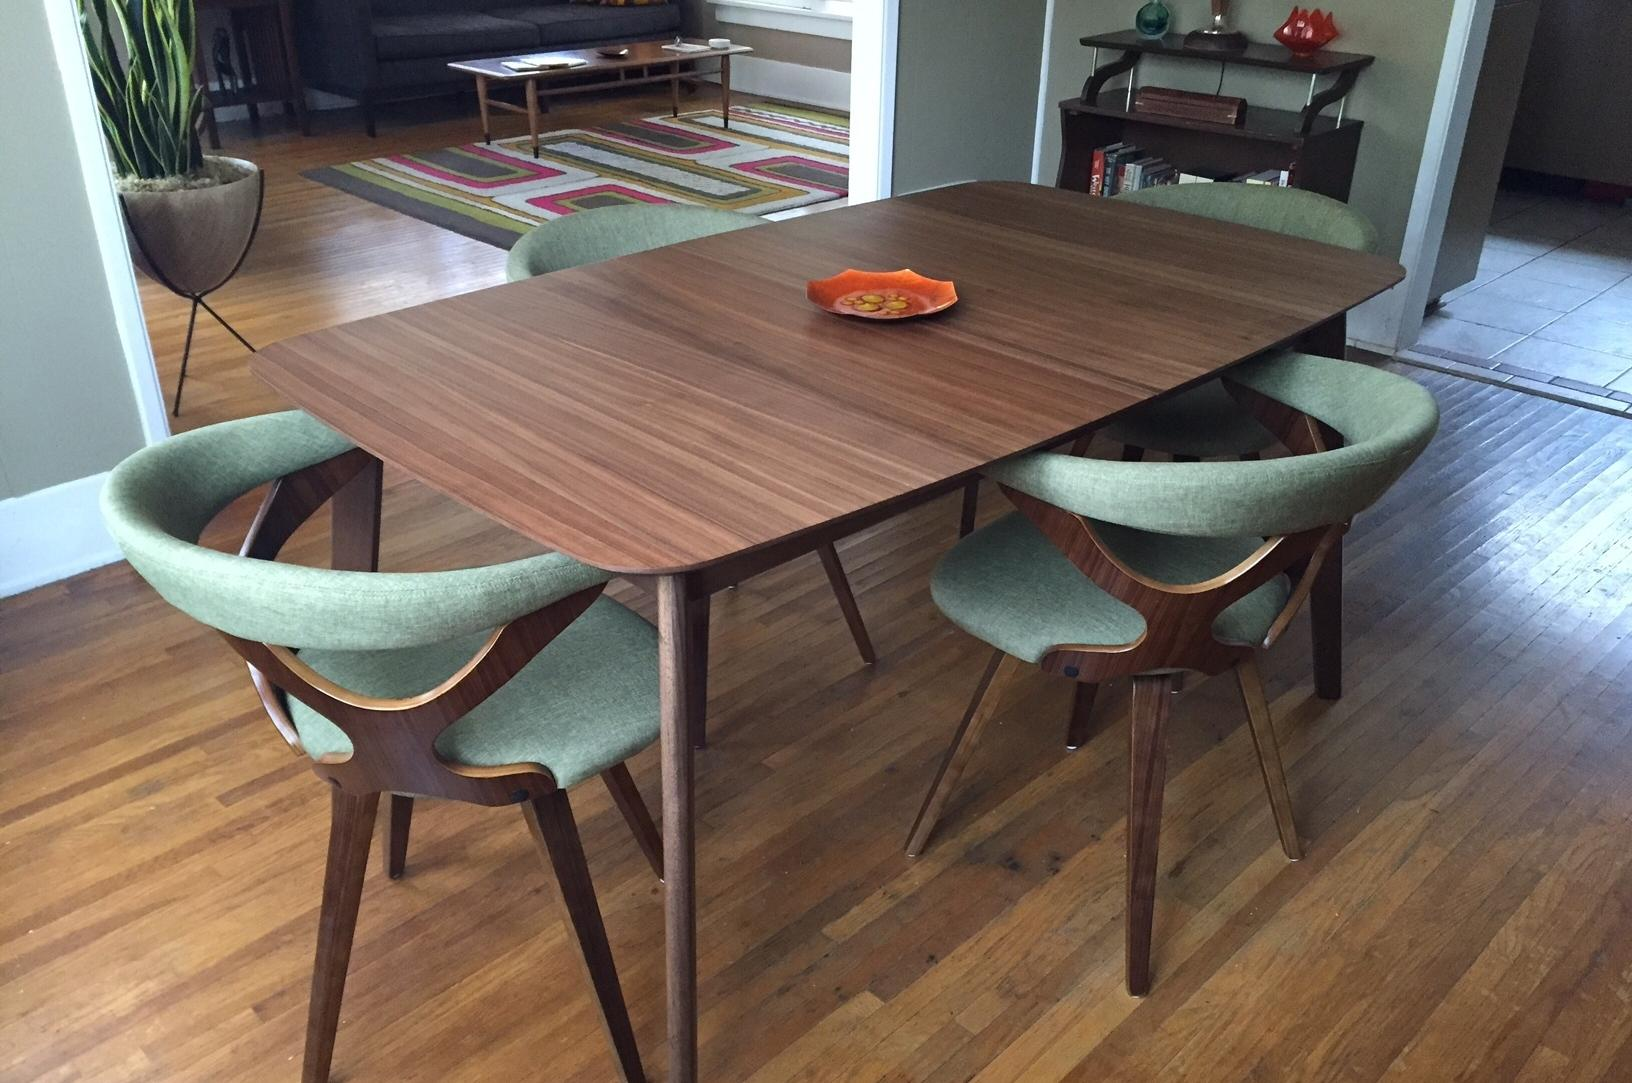 Modern Table And Chairs Mix And Match Is The Modern Way To Furnish A Dining Room The